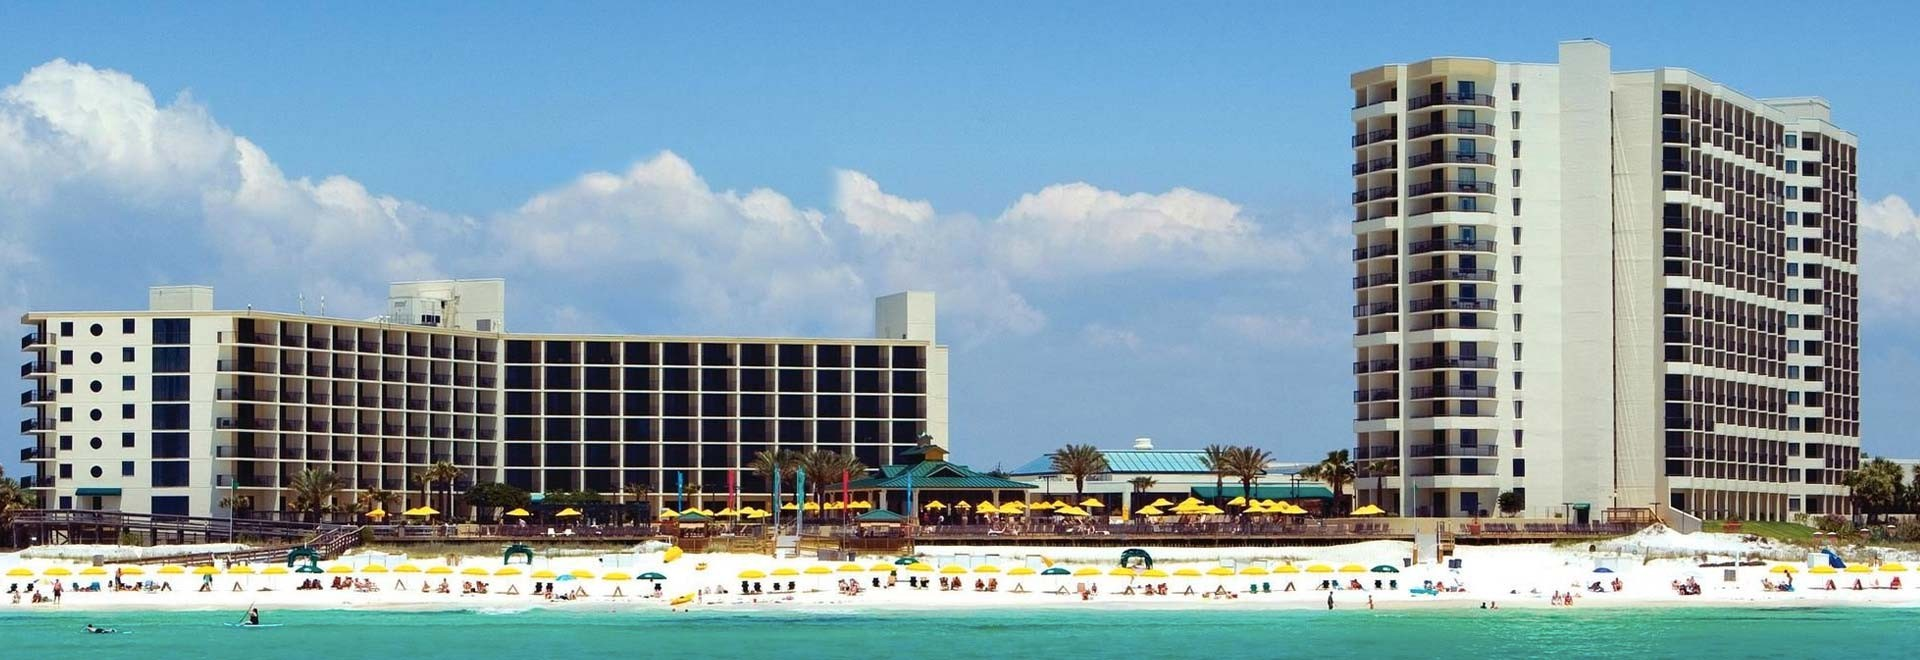 Hilton Sandestin Beach Golf Resort & Spa, Florida - Book. Travel. Play.